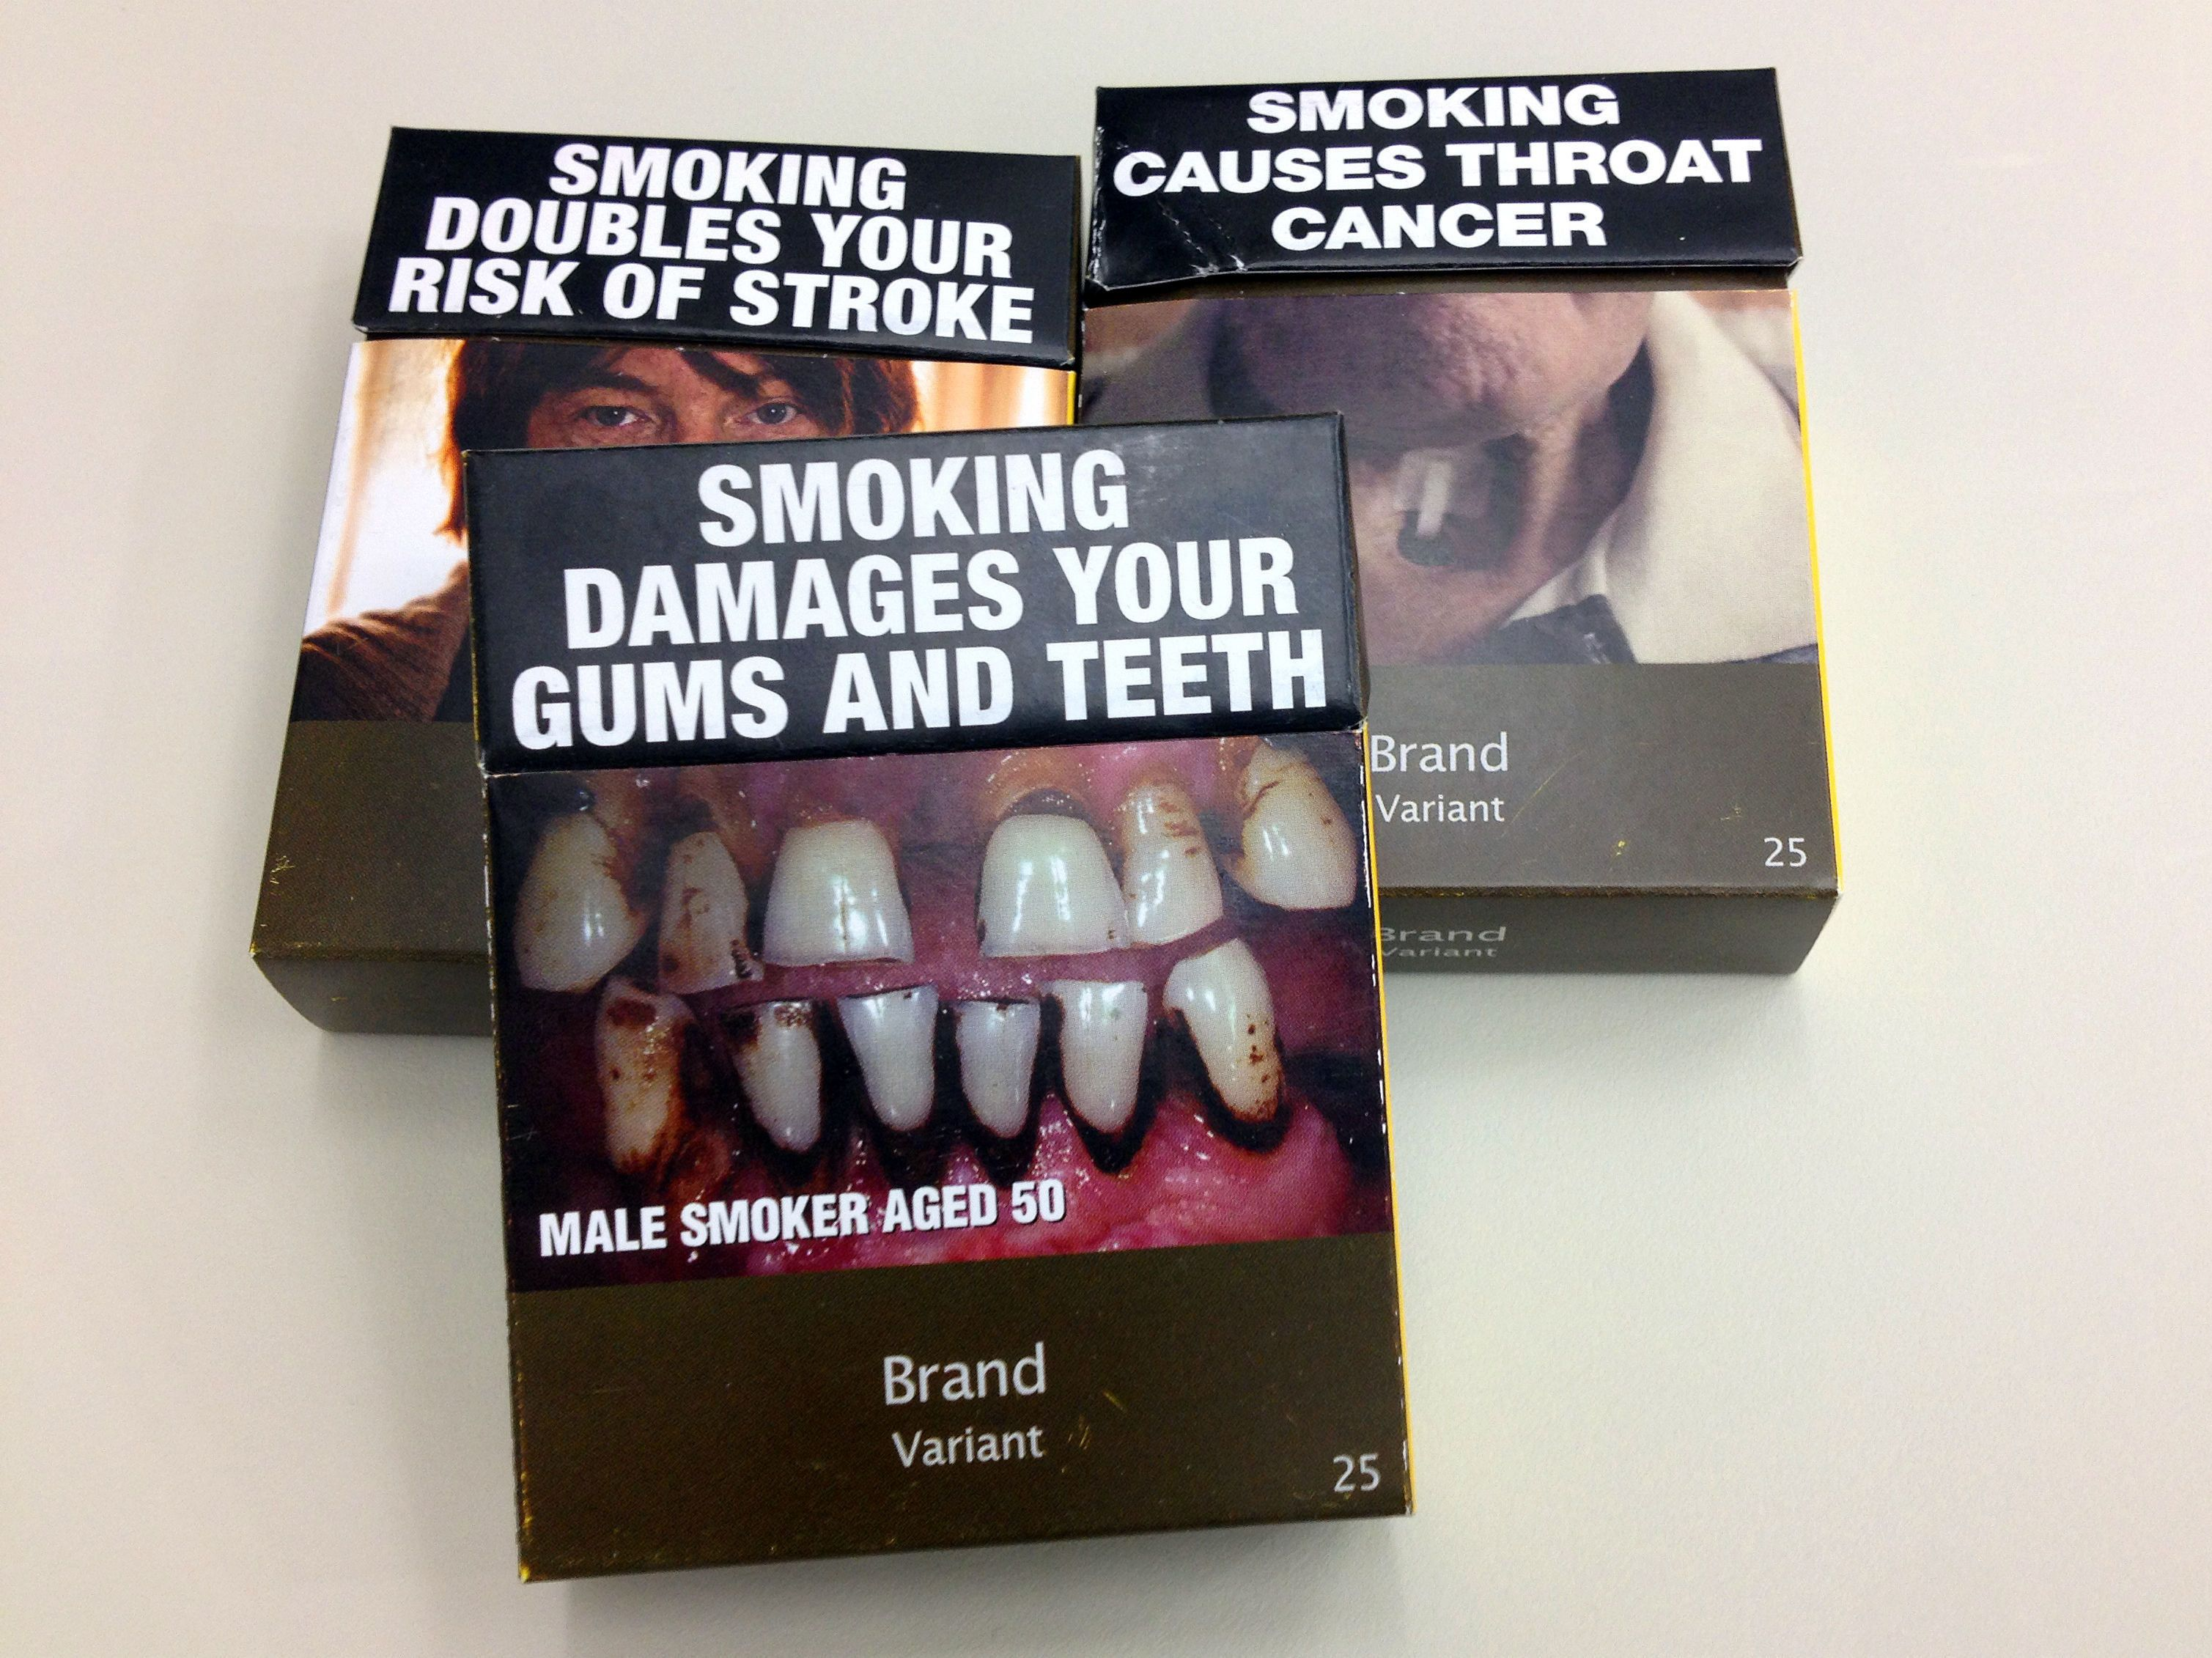 Standardised cigarette packs used in Australia where the directive has been in place since